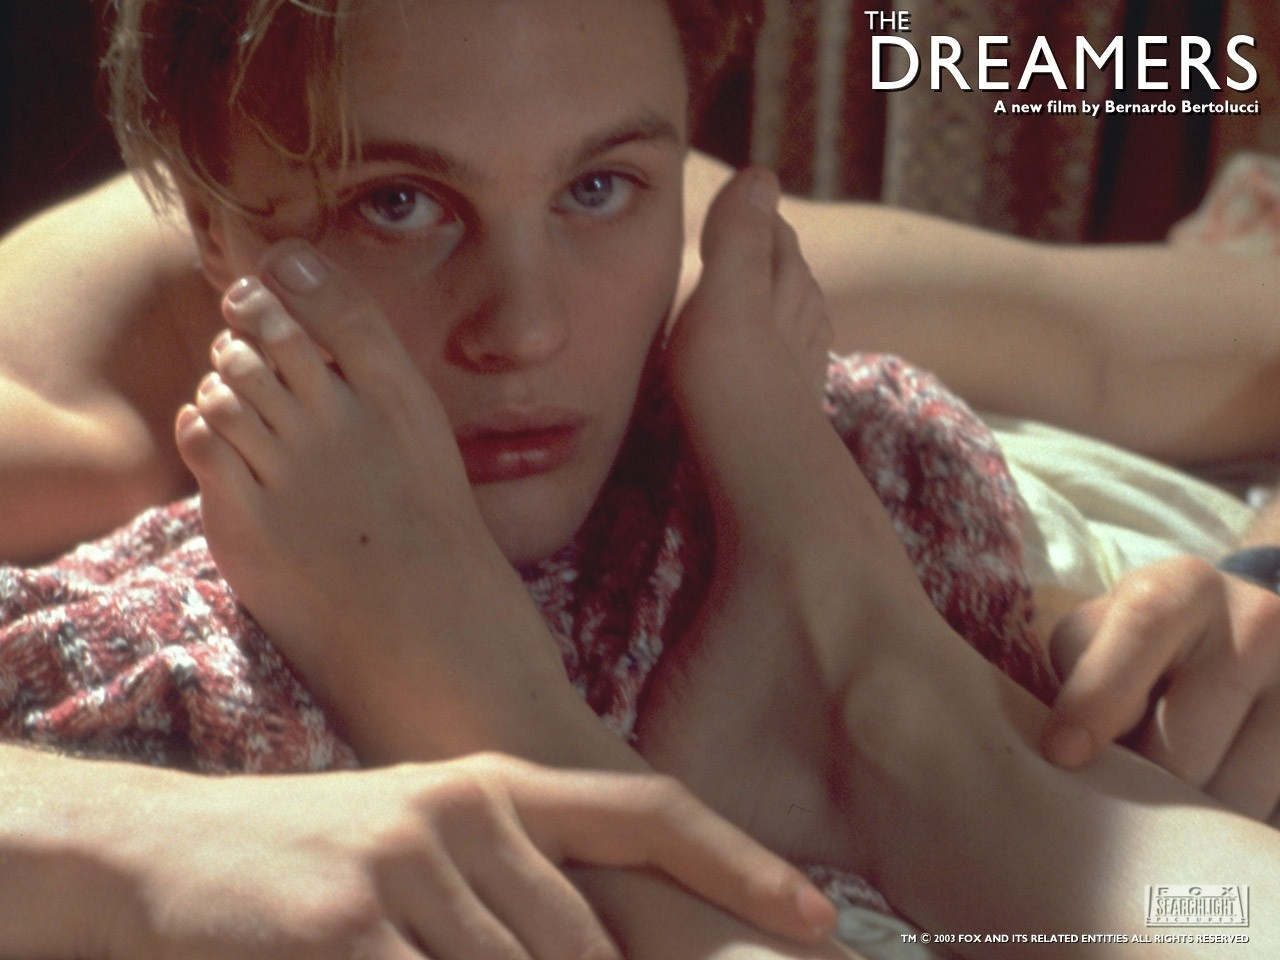 Wallpaper 'fetish' per il film The dreamers - I sognatori